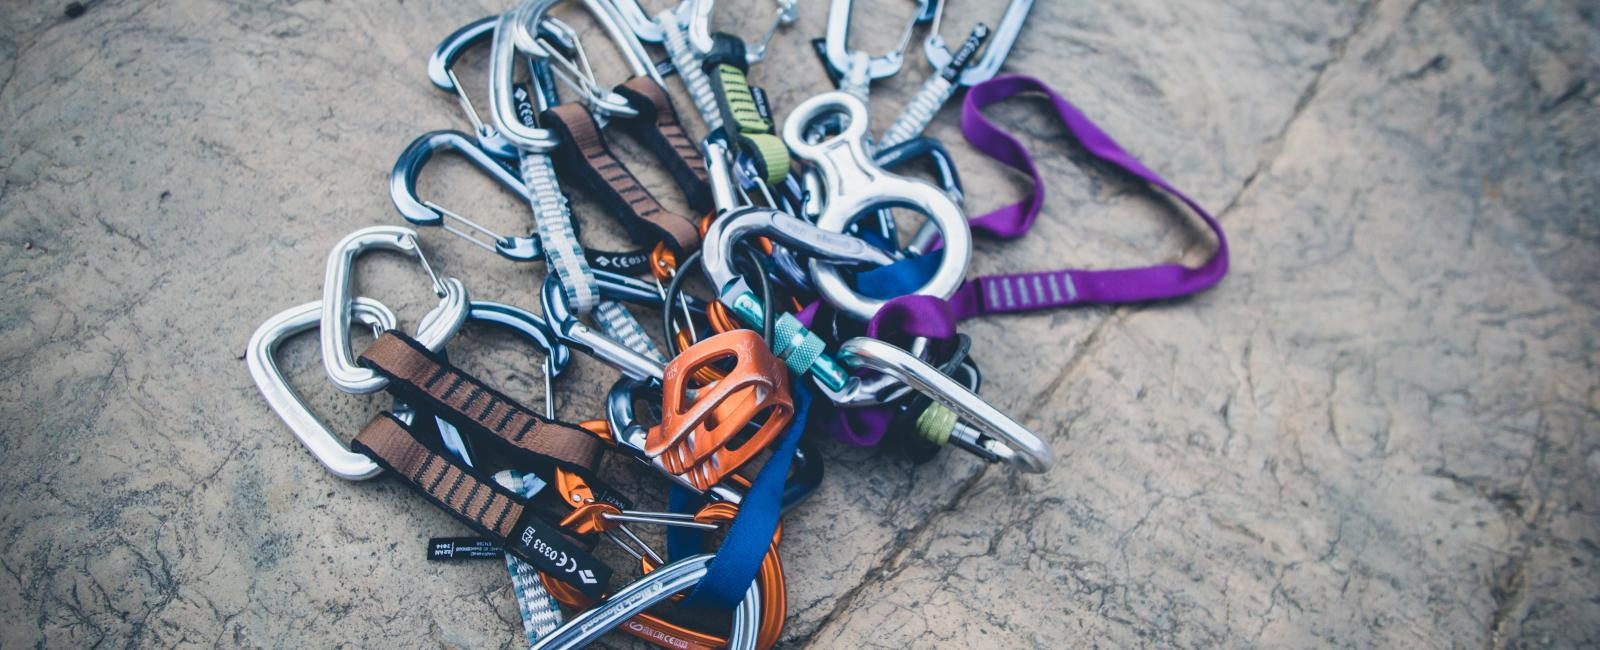 Climbing hooks and carabiners